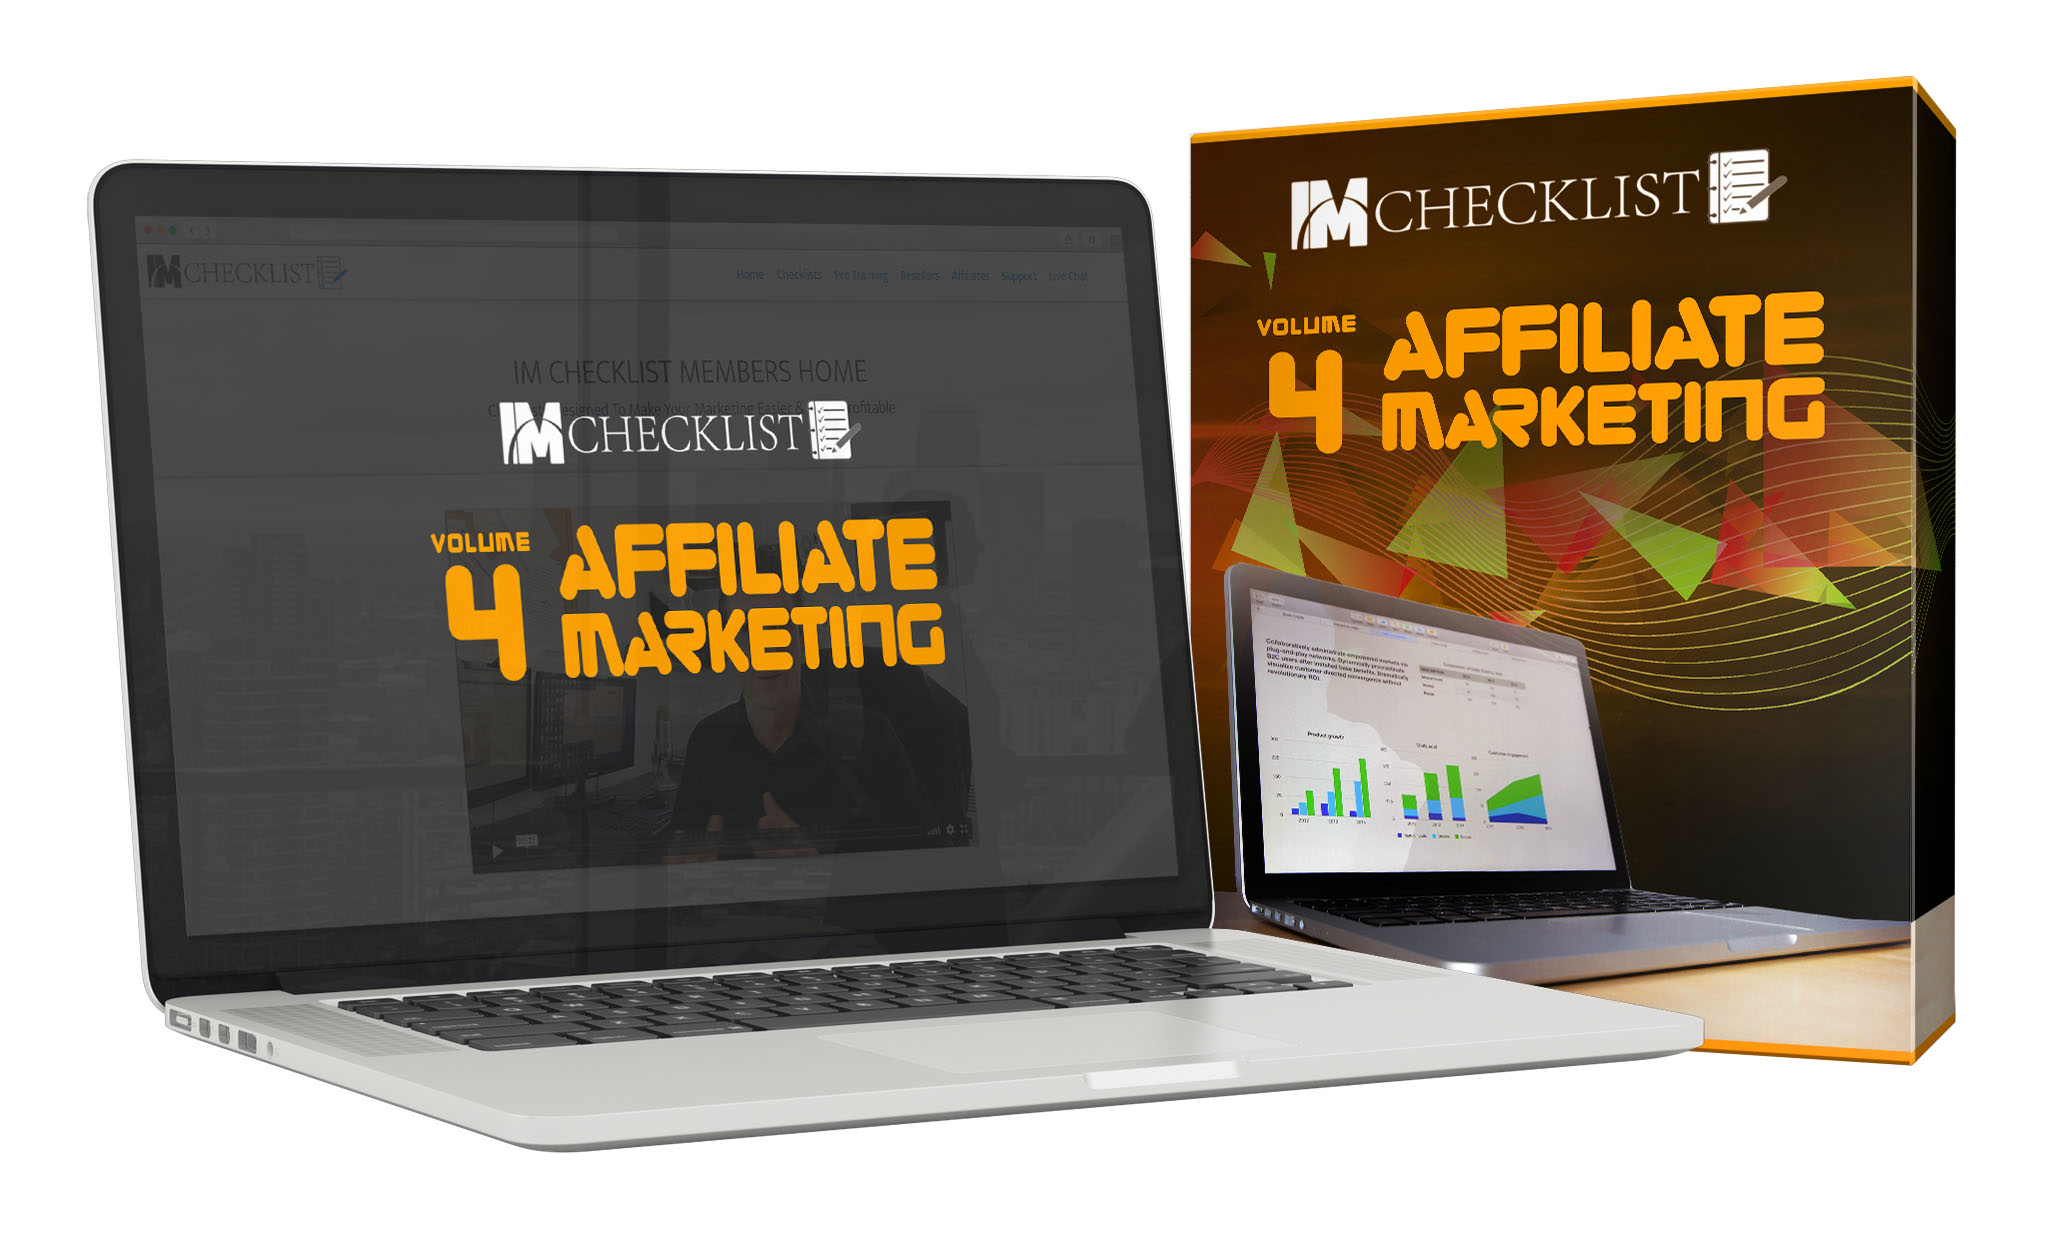 IM Checklist V4 - Affiliate Marketing